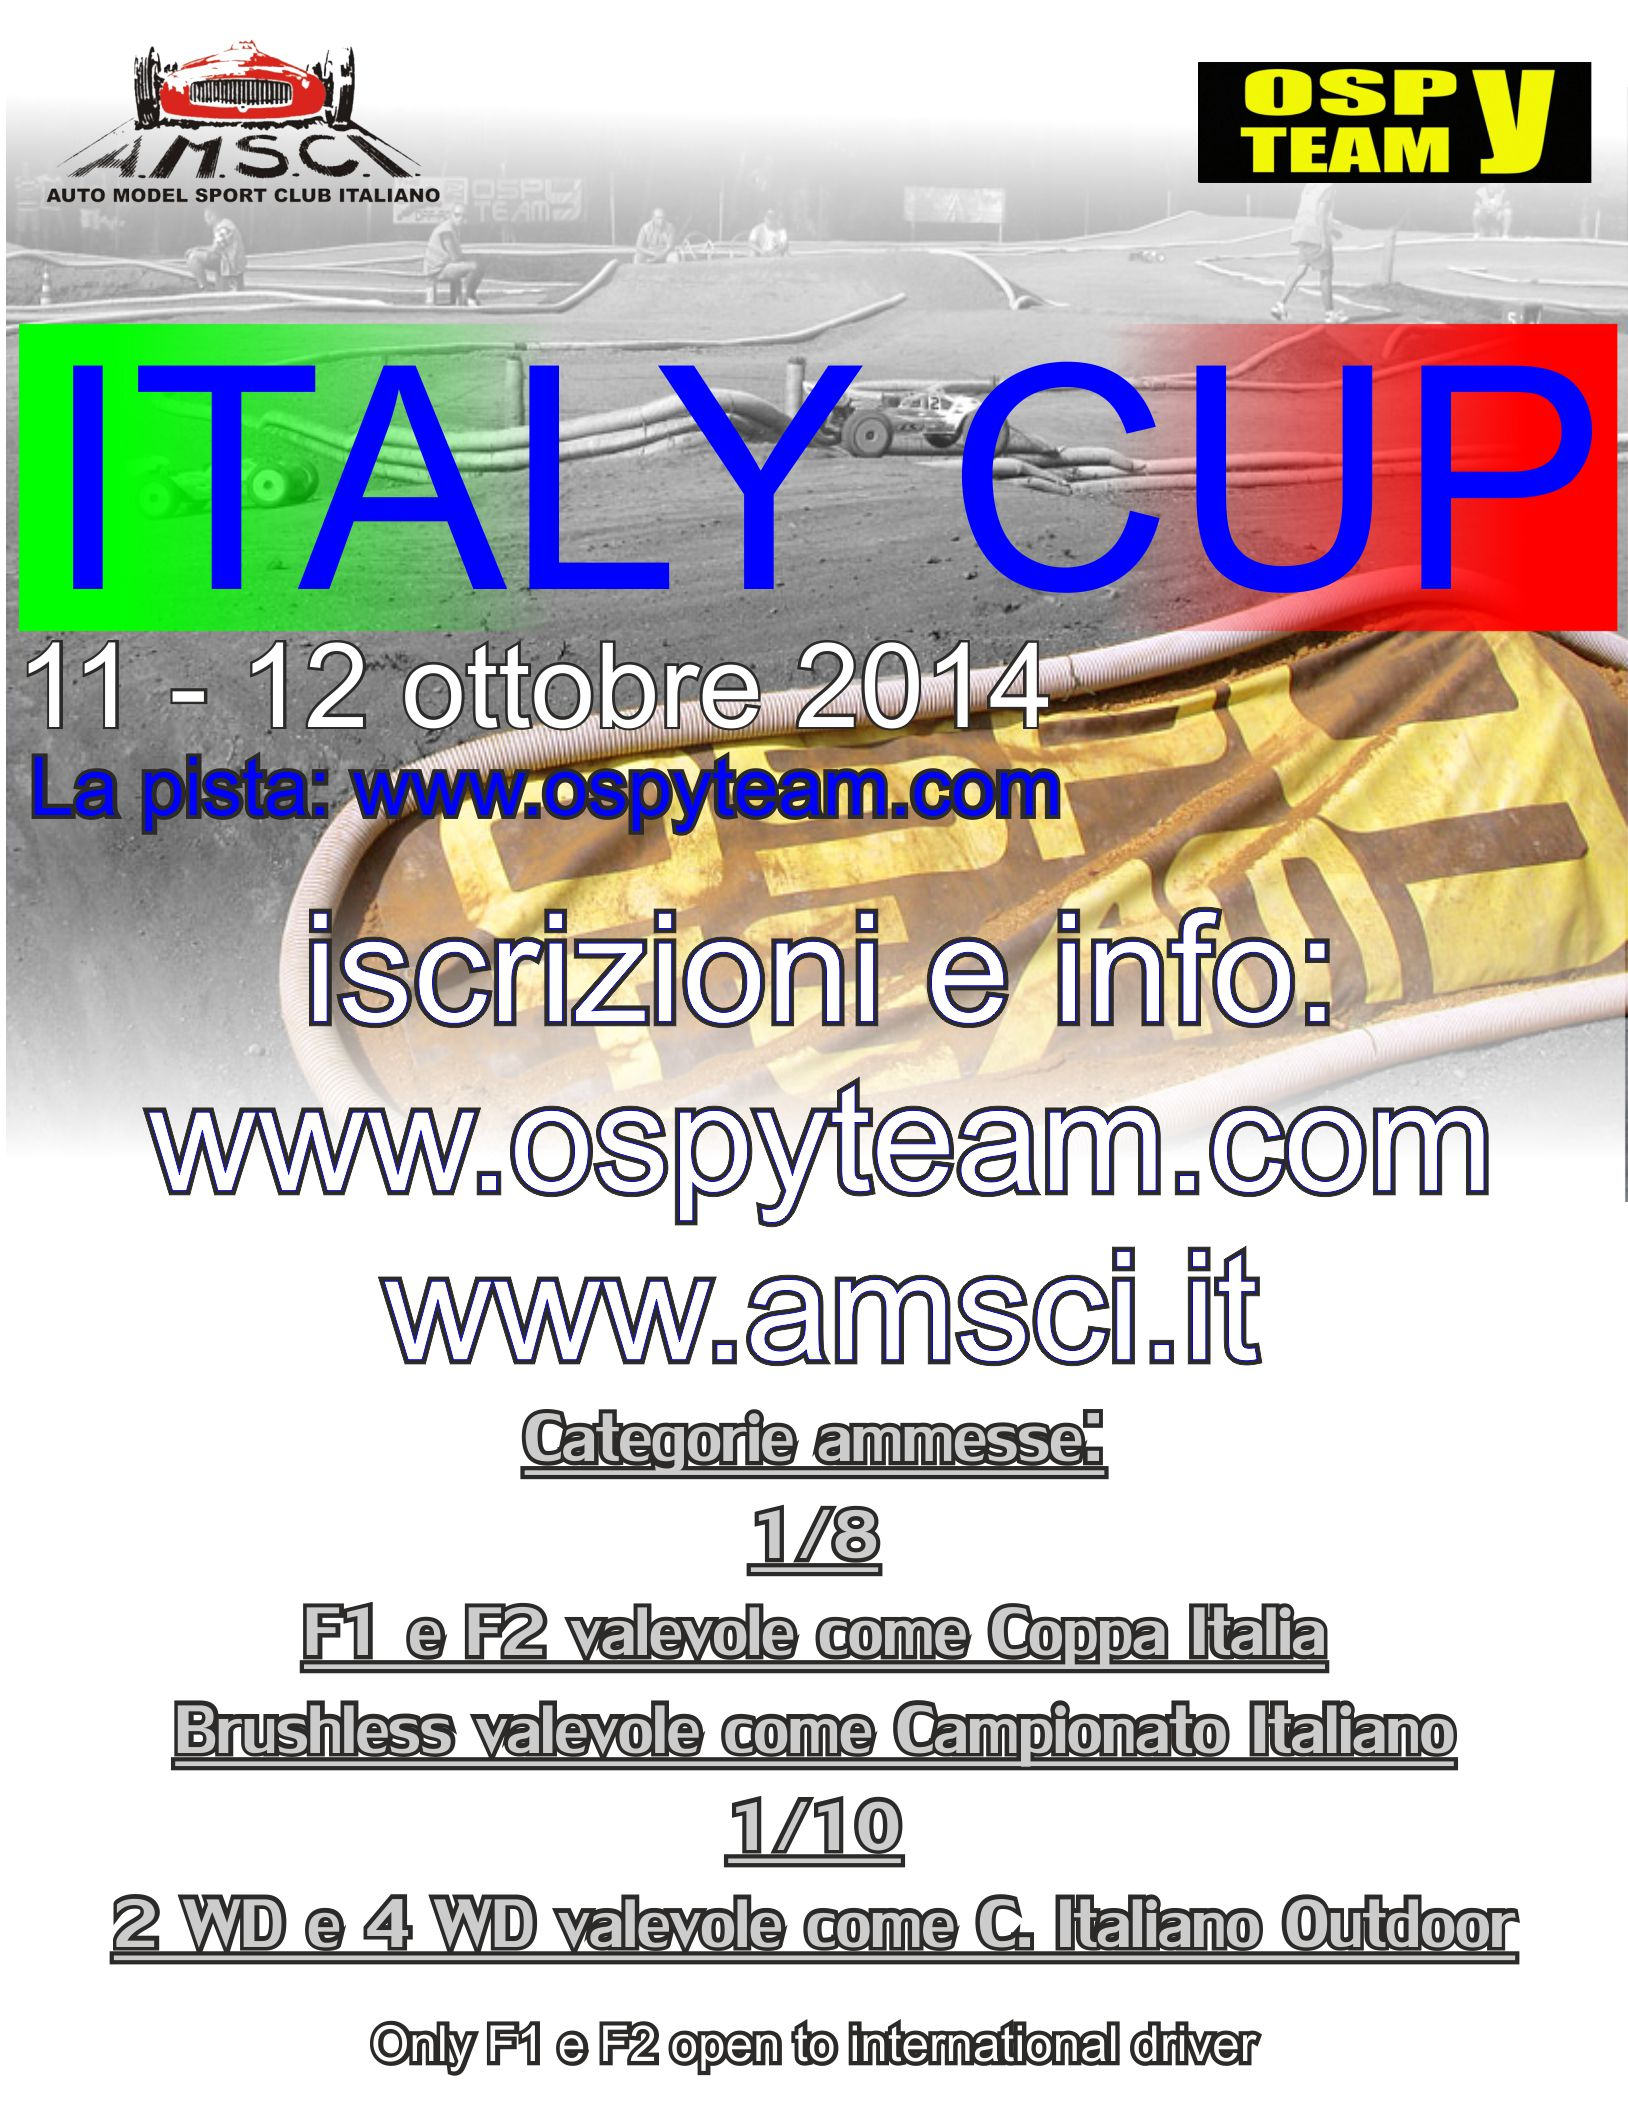 Italy Cup 2014 AMSCI 1 (1)